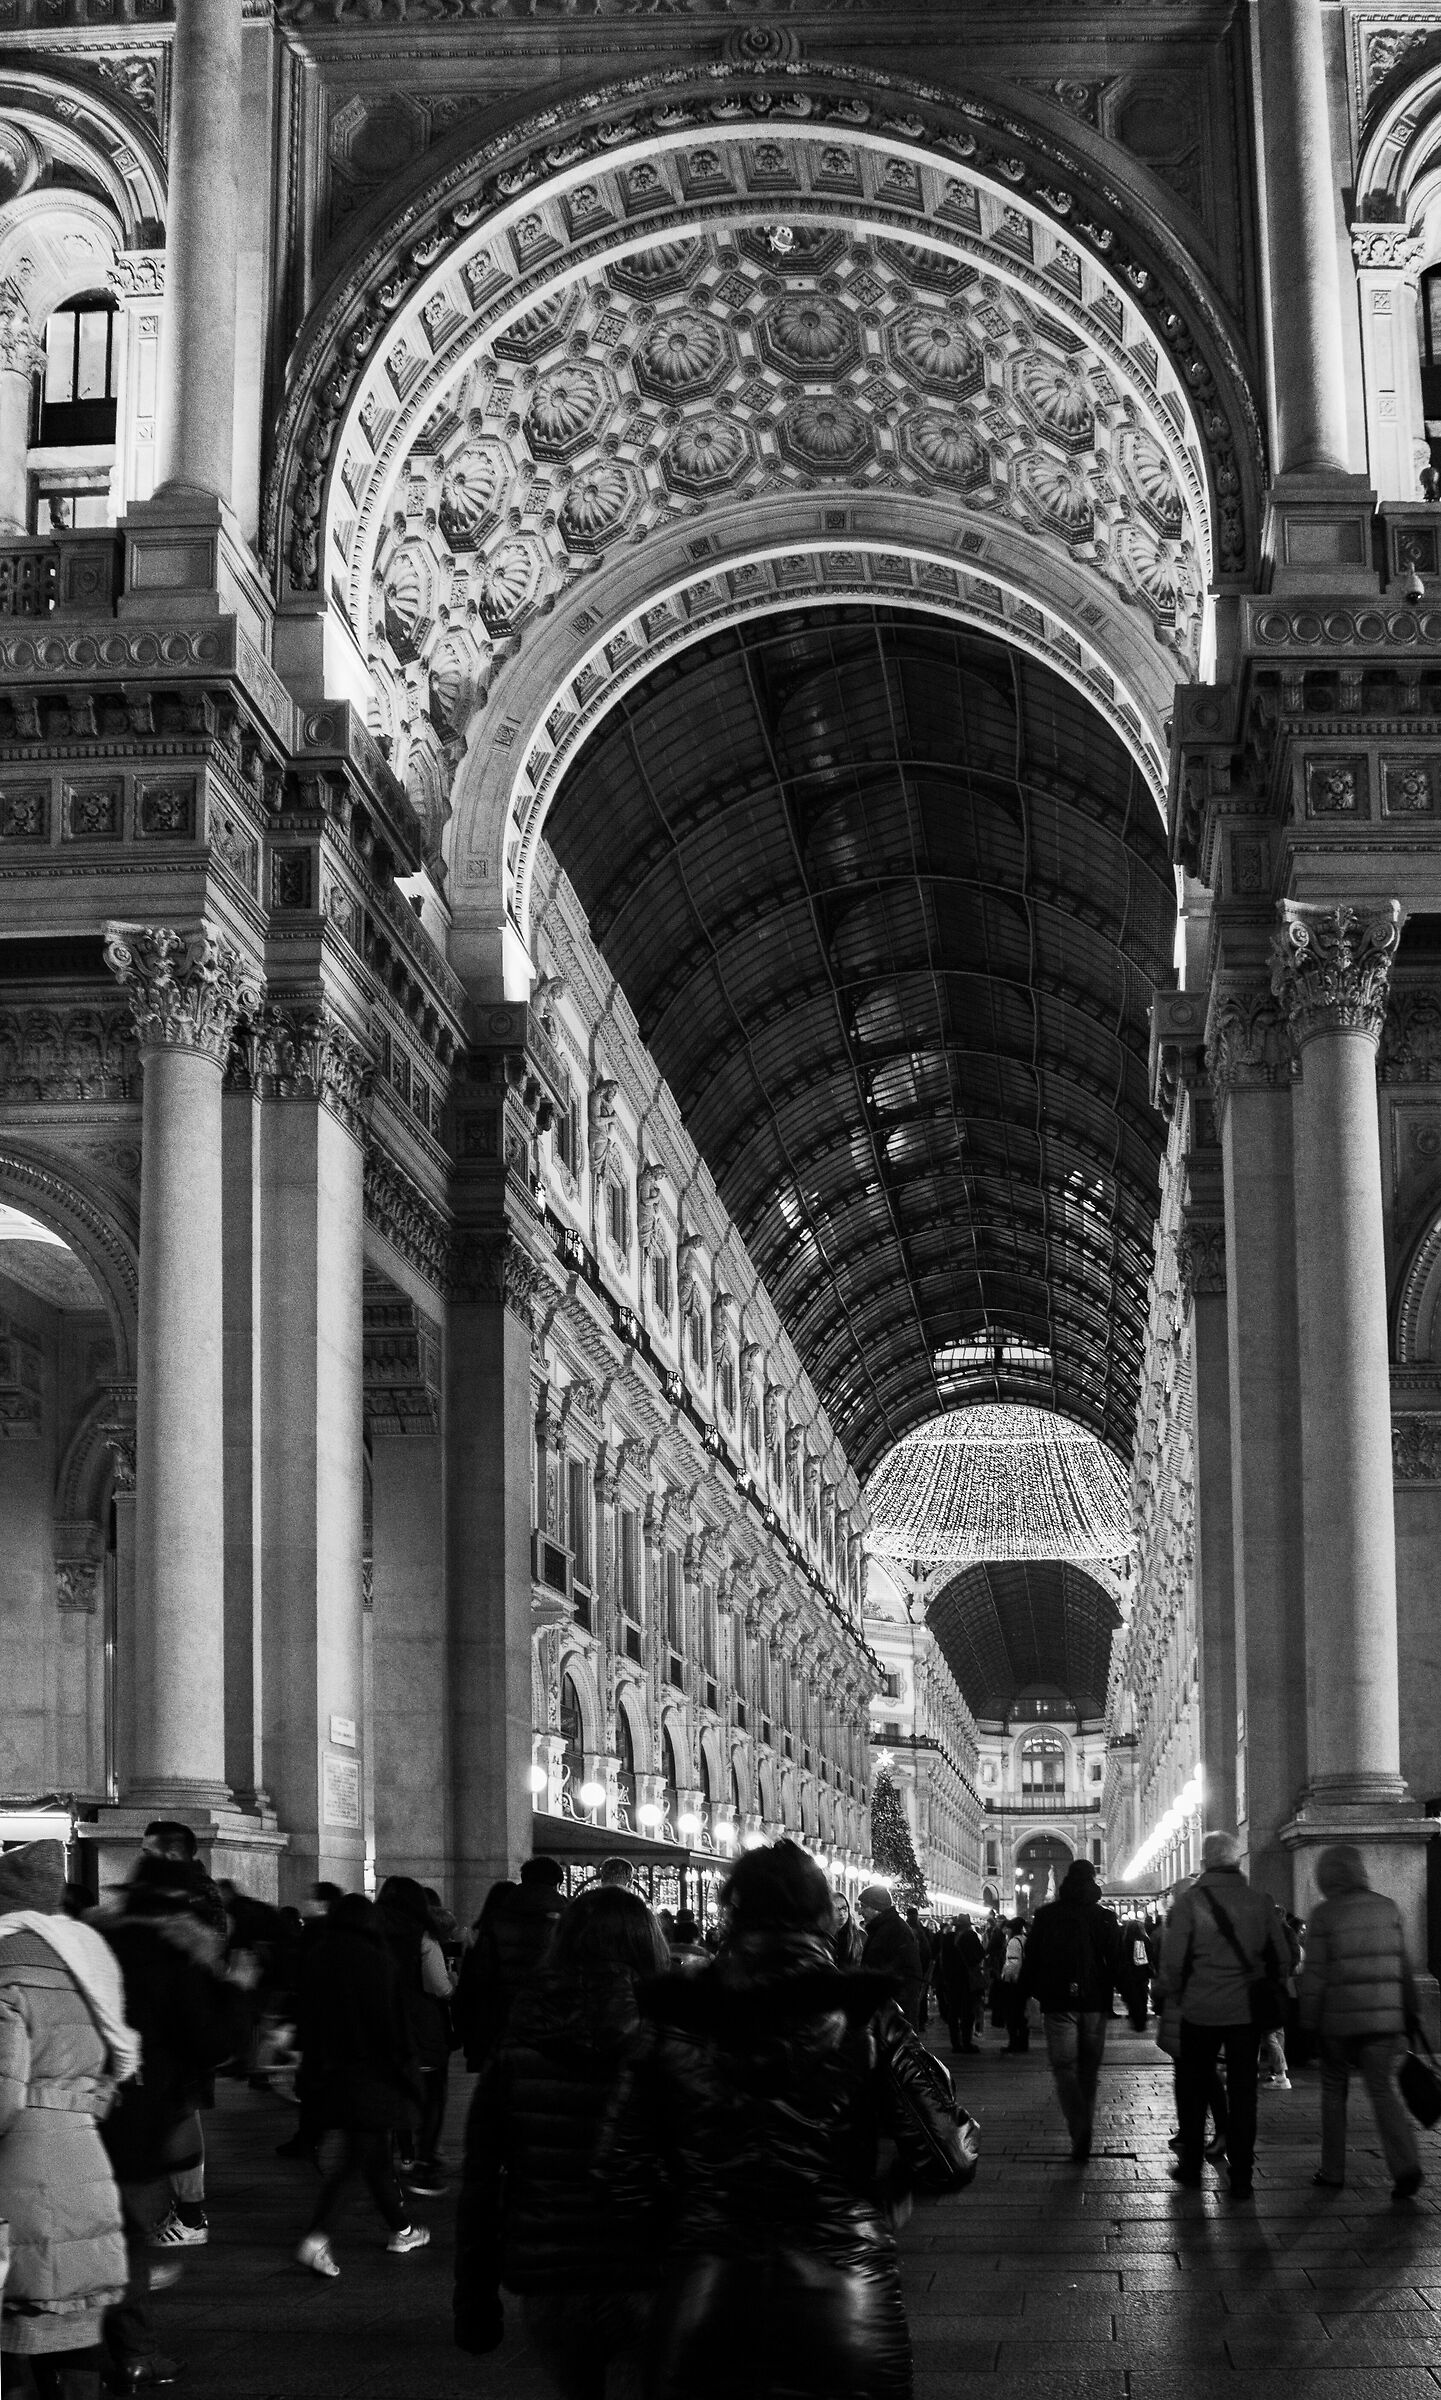 Milan-Lights in the gallery...